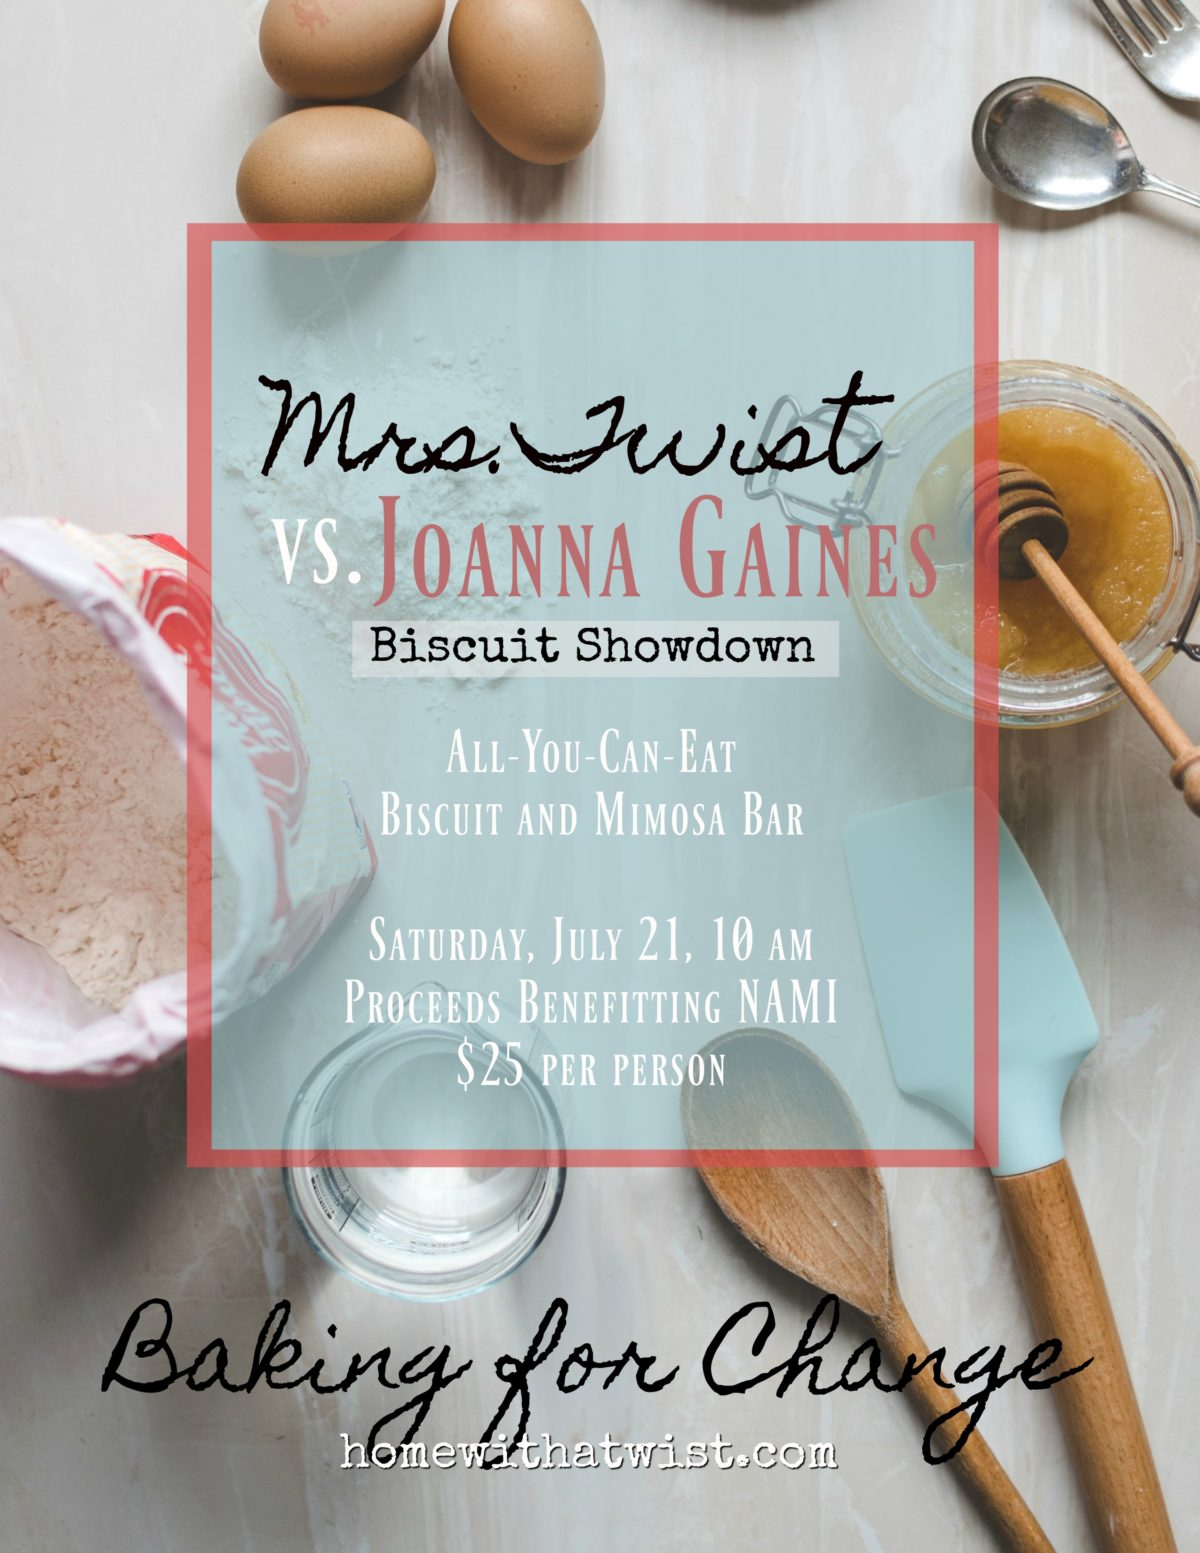 Mrs. Twist vs. Joanna Gaines:  Biscuit Showdown Benefit